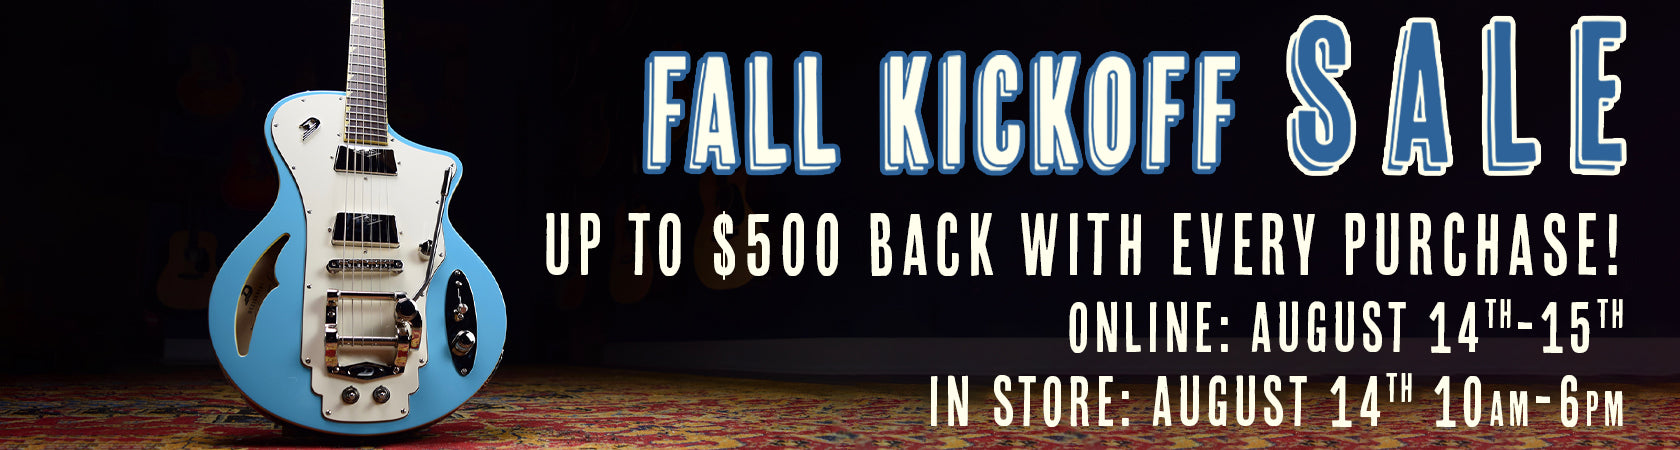 Spicer's Music Fall Kickoff 2021 Sale